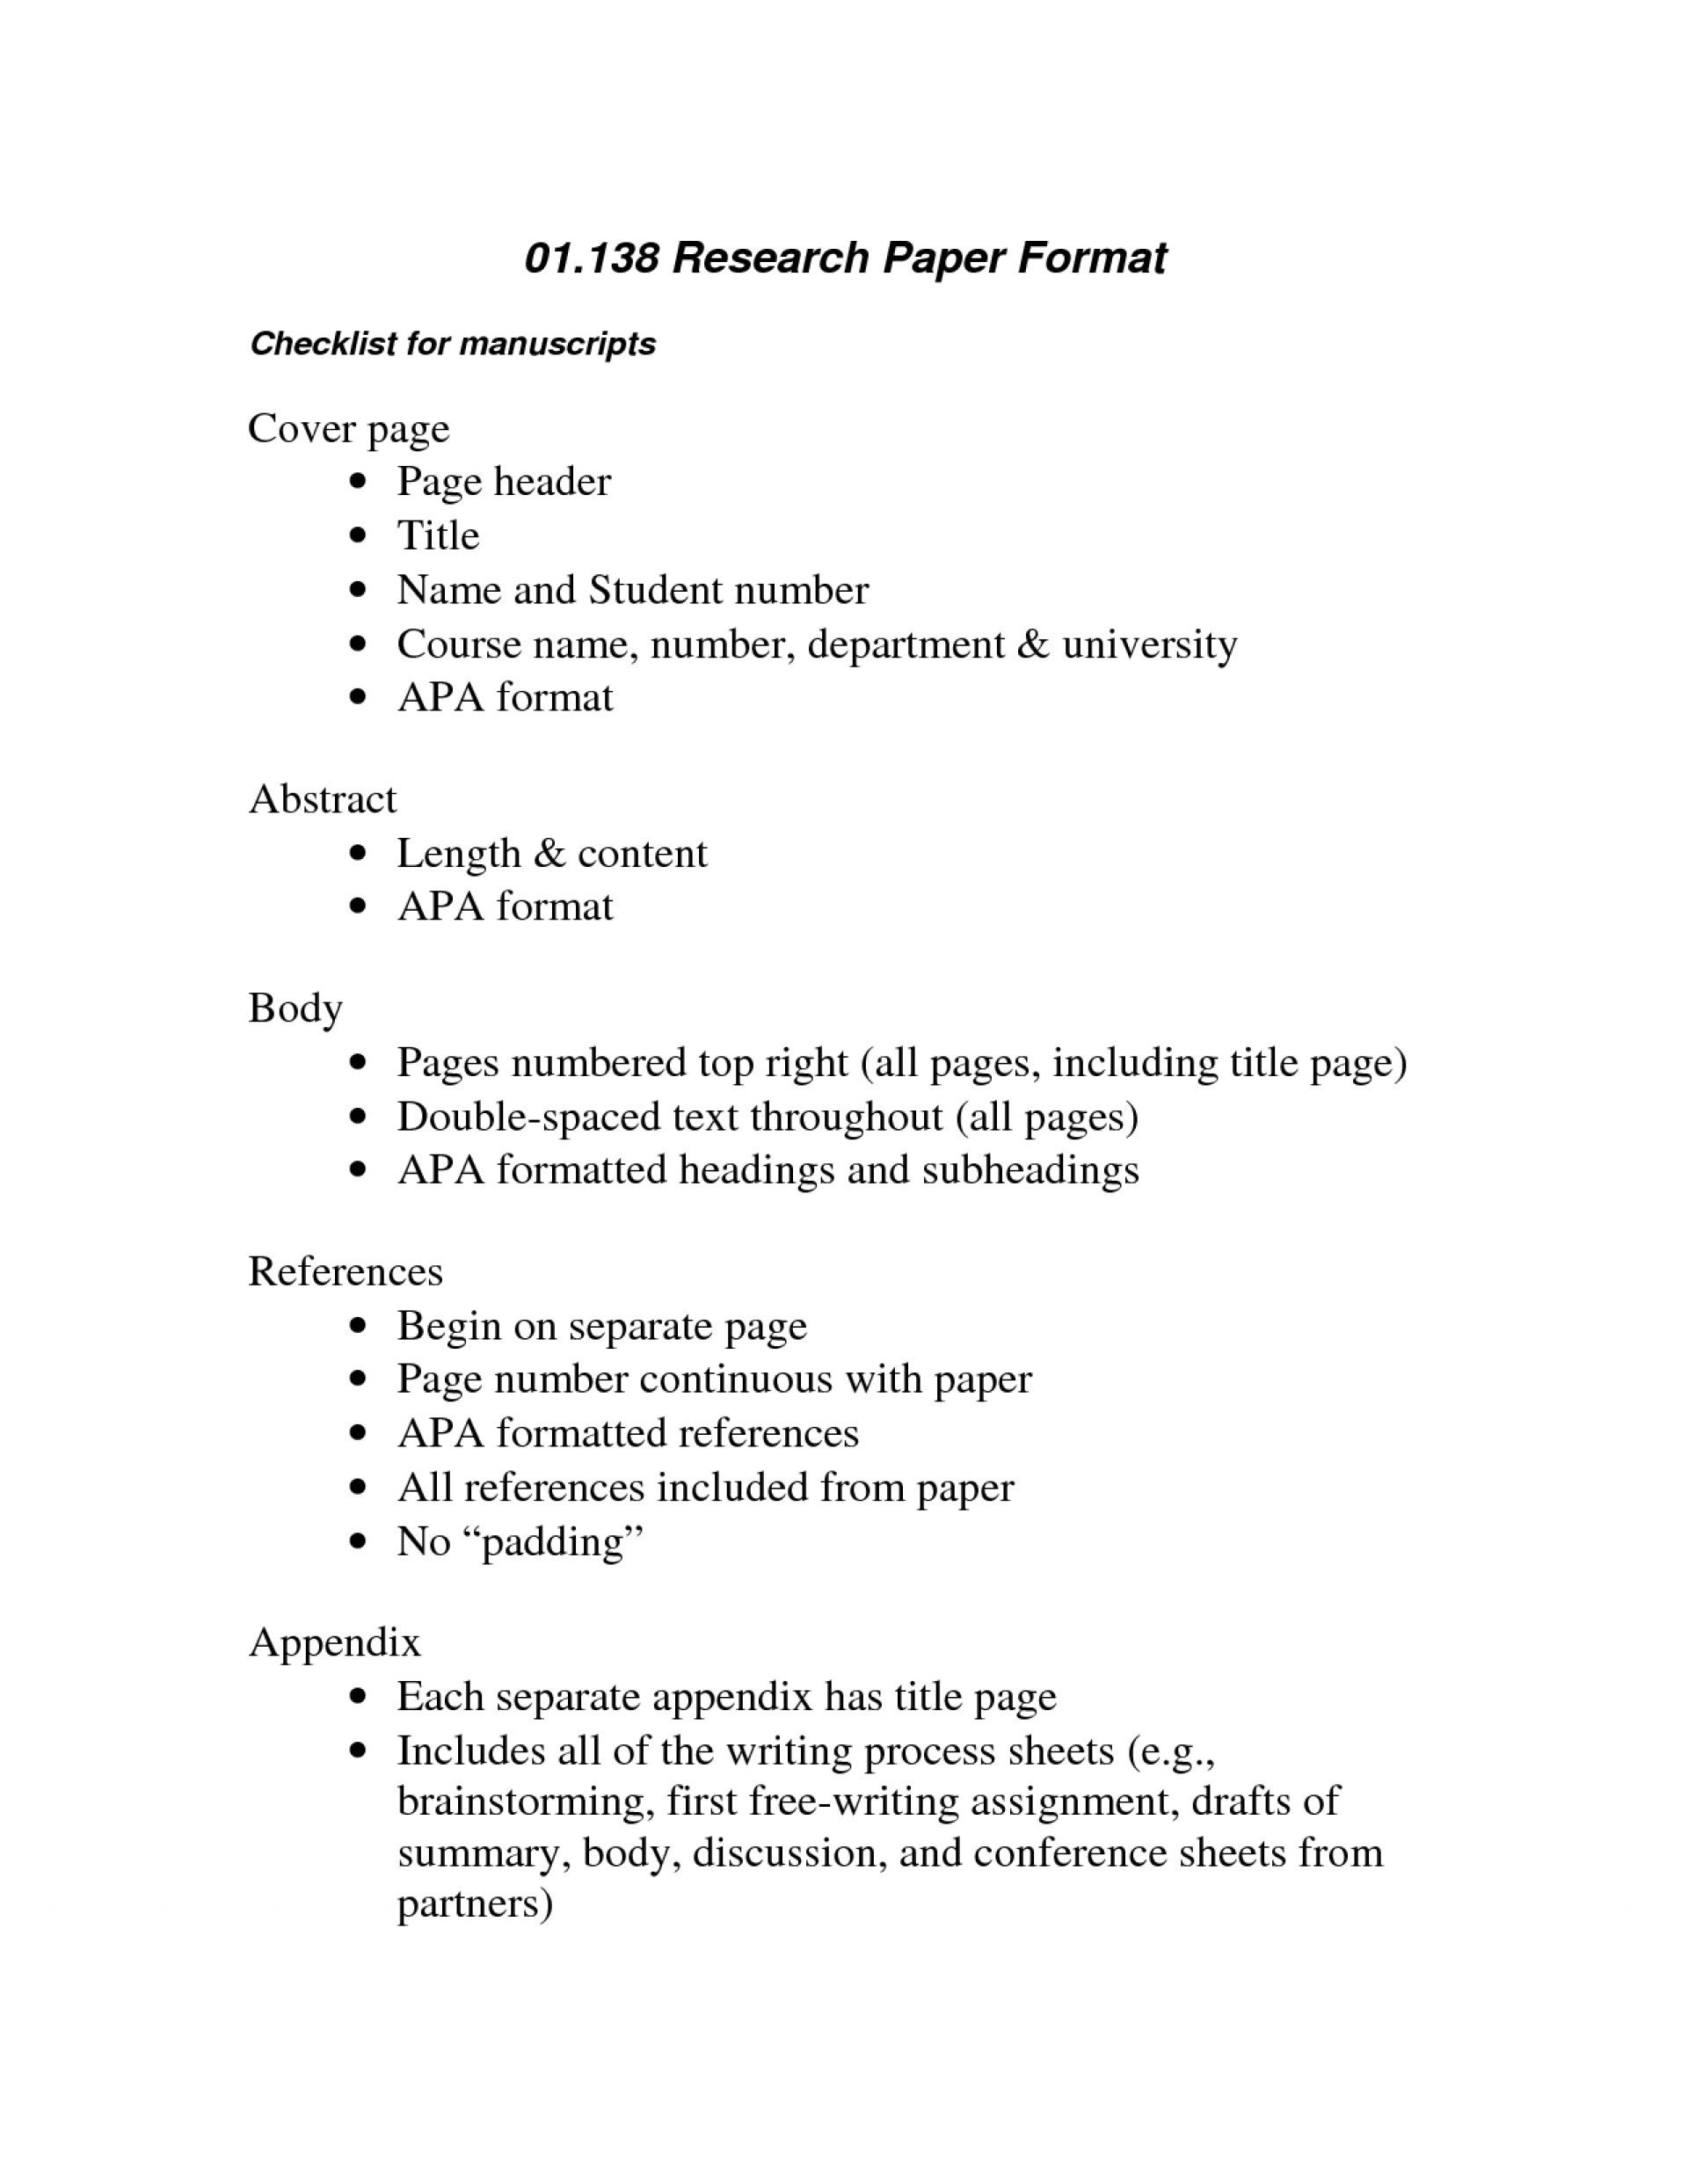 002 Apa Research Paper Format Outstanding Word Outline Examples 1920